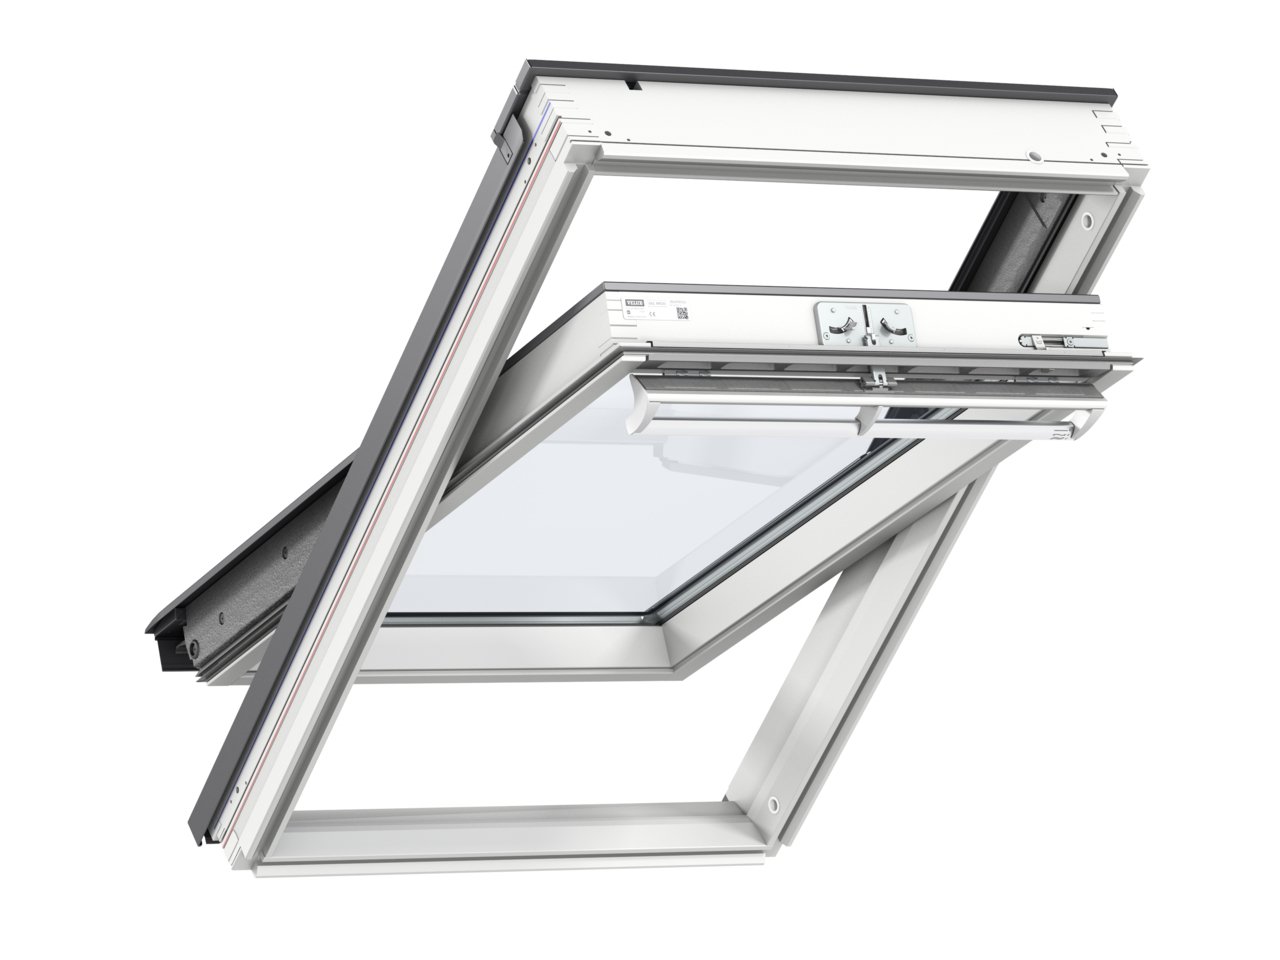 Velux GGL UK08 1340 x 1400mm Centre Pivot 70QPane Roof Window - White Painted